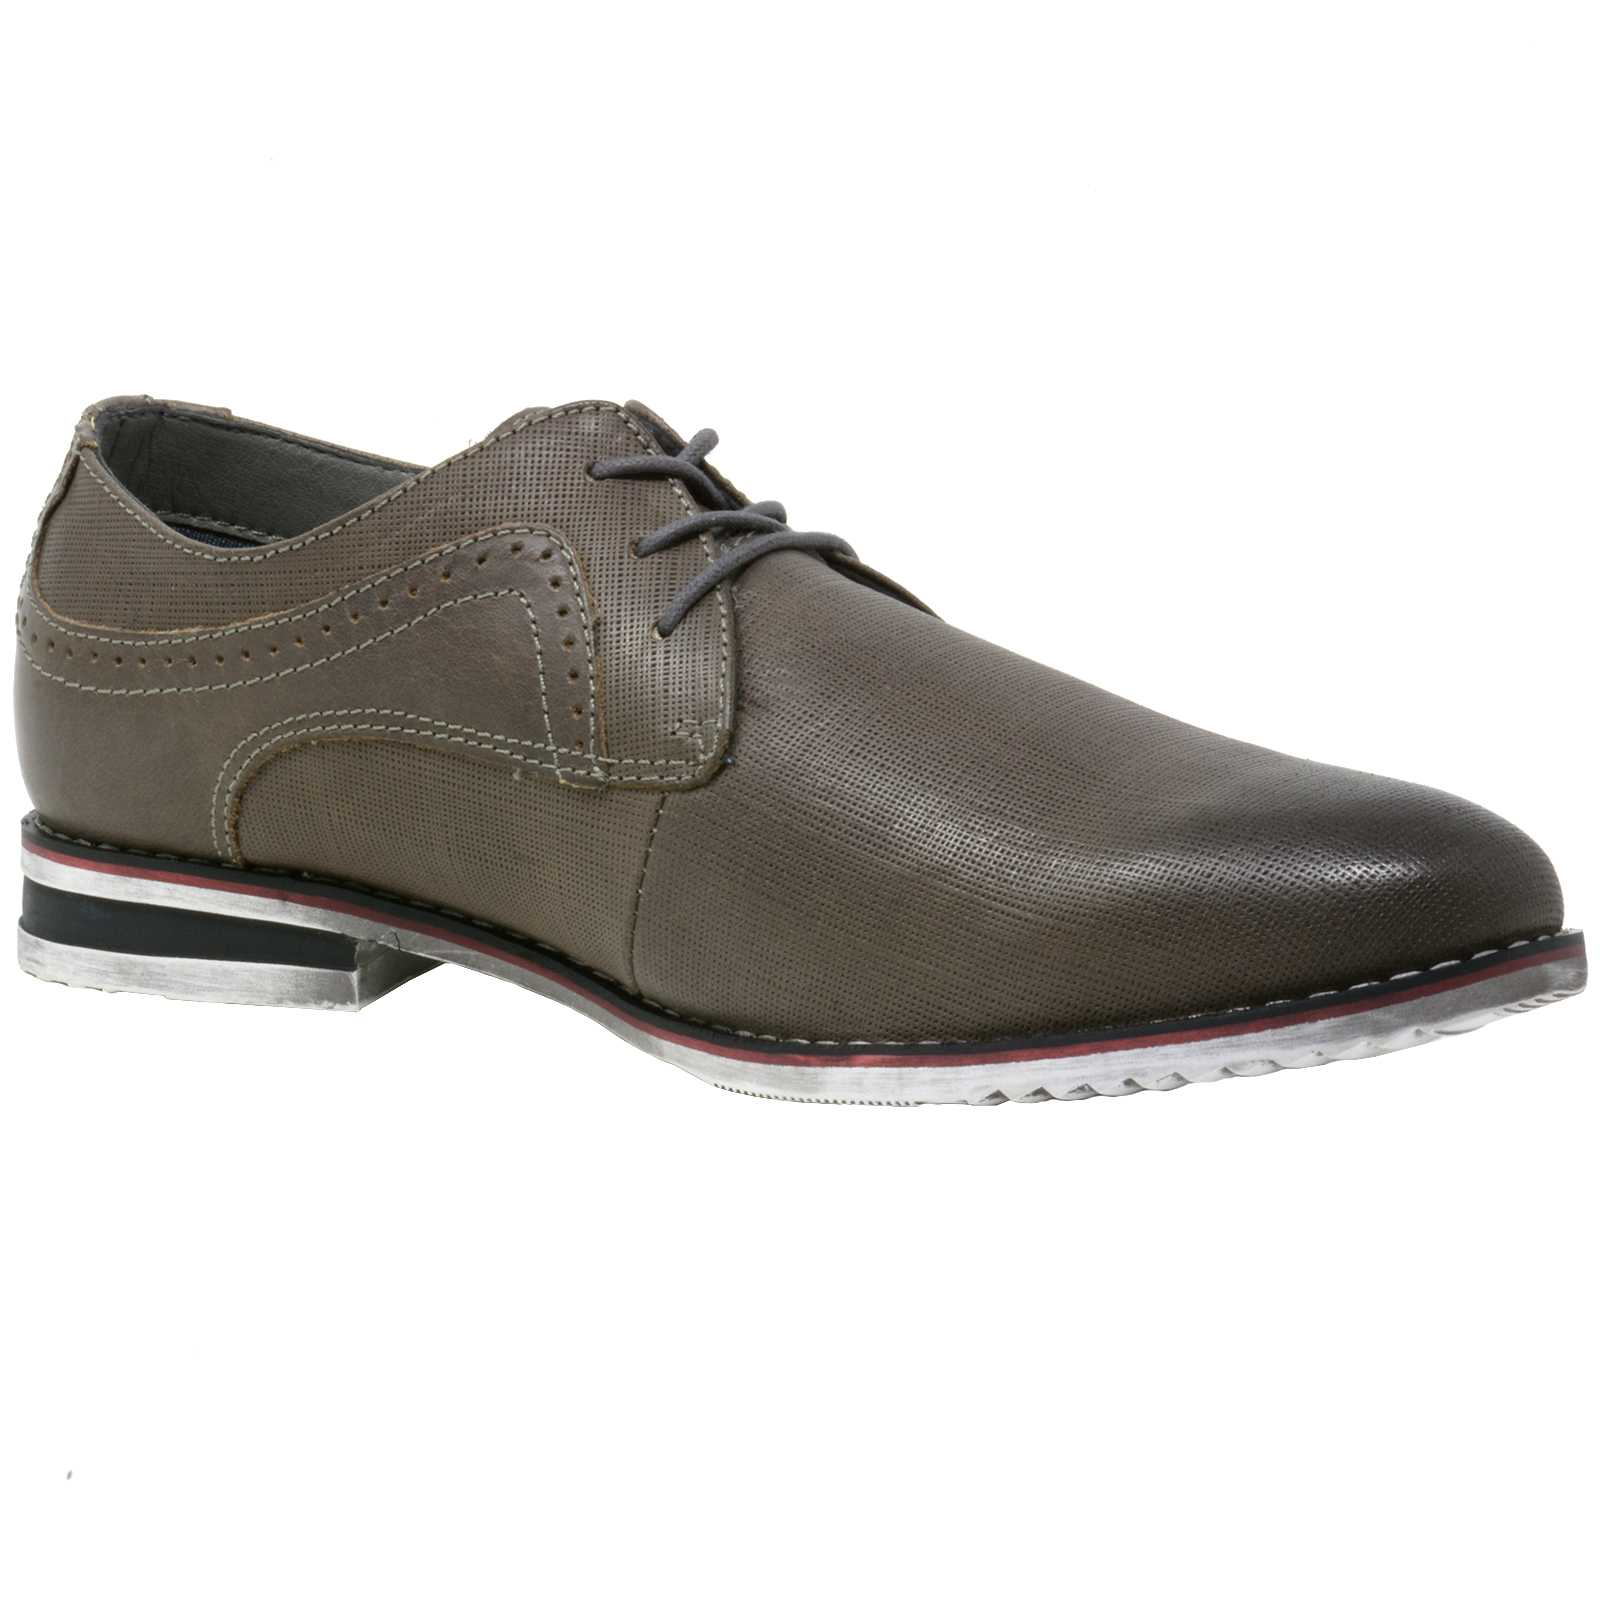 Double-Diamond-by-Alpine-Swiss-Mens-Saffiano-Leather-Lace-Up-Oxford-Dress-Shoes thumbnail 28